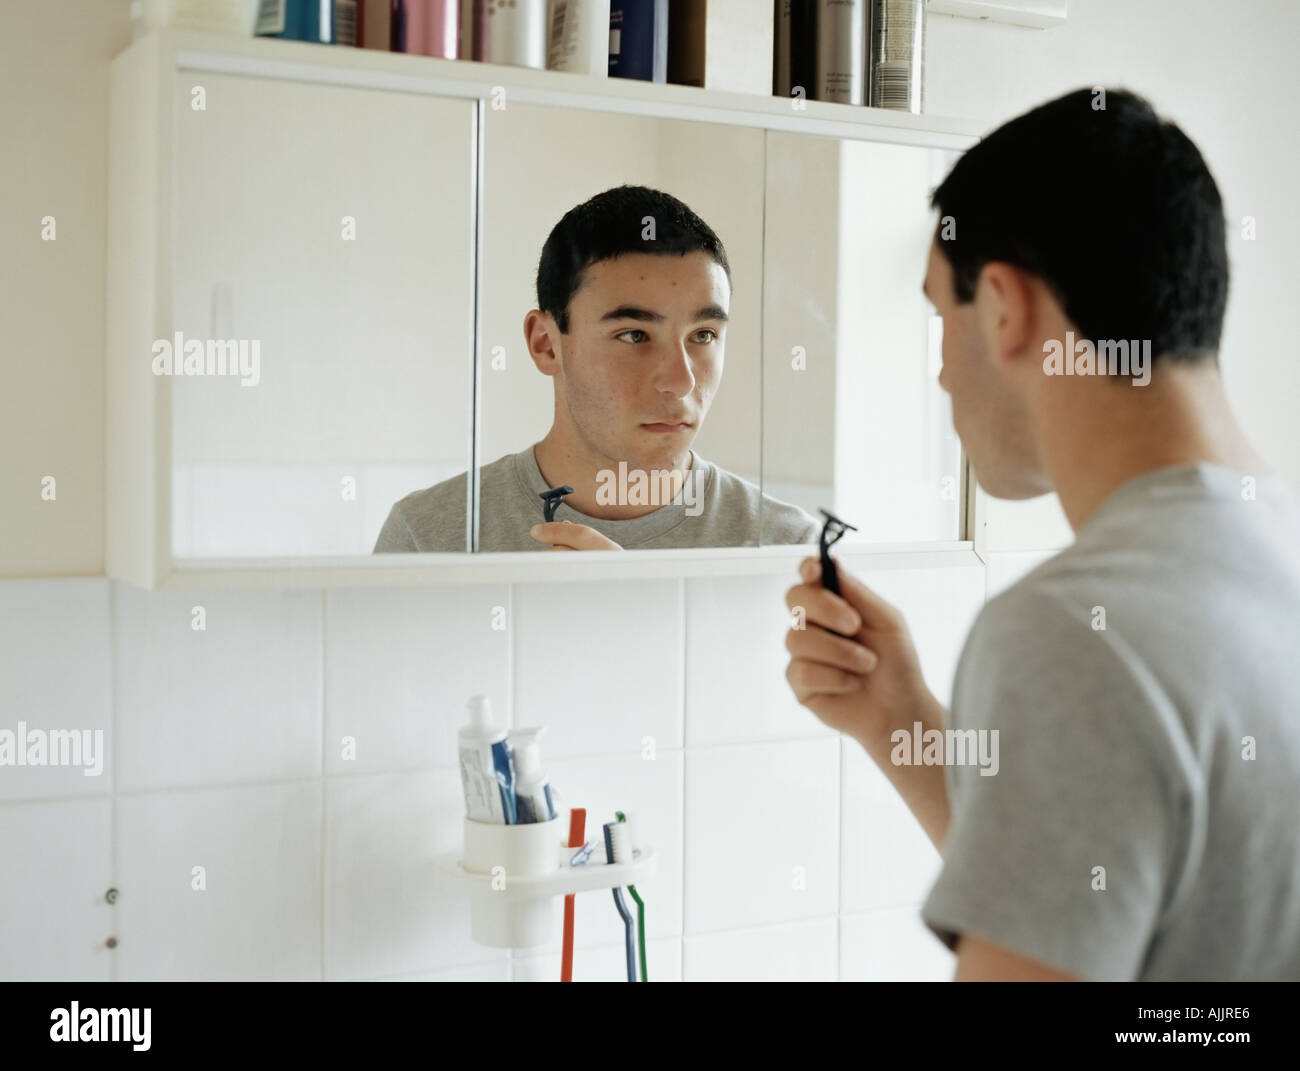 Teenage boy preparing to shave - Stock Image